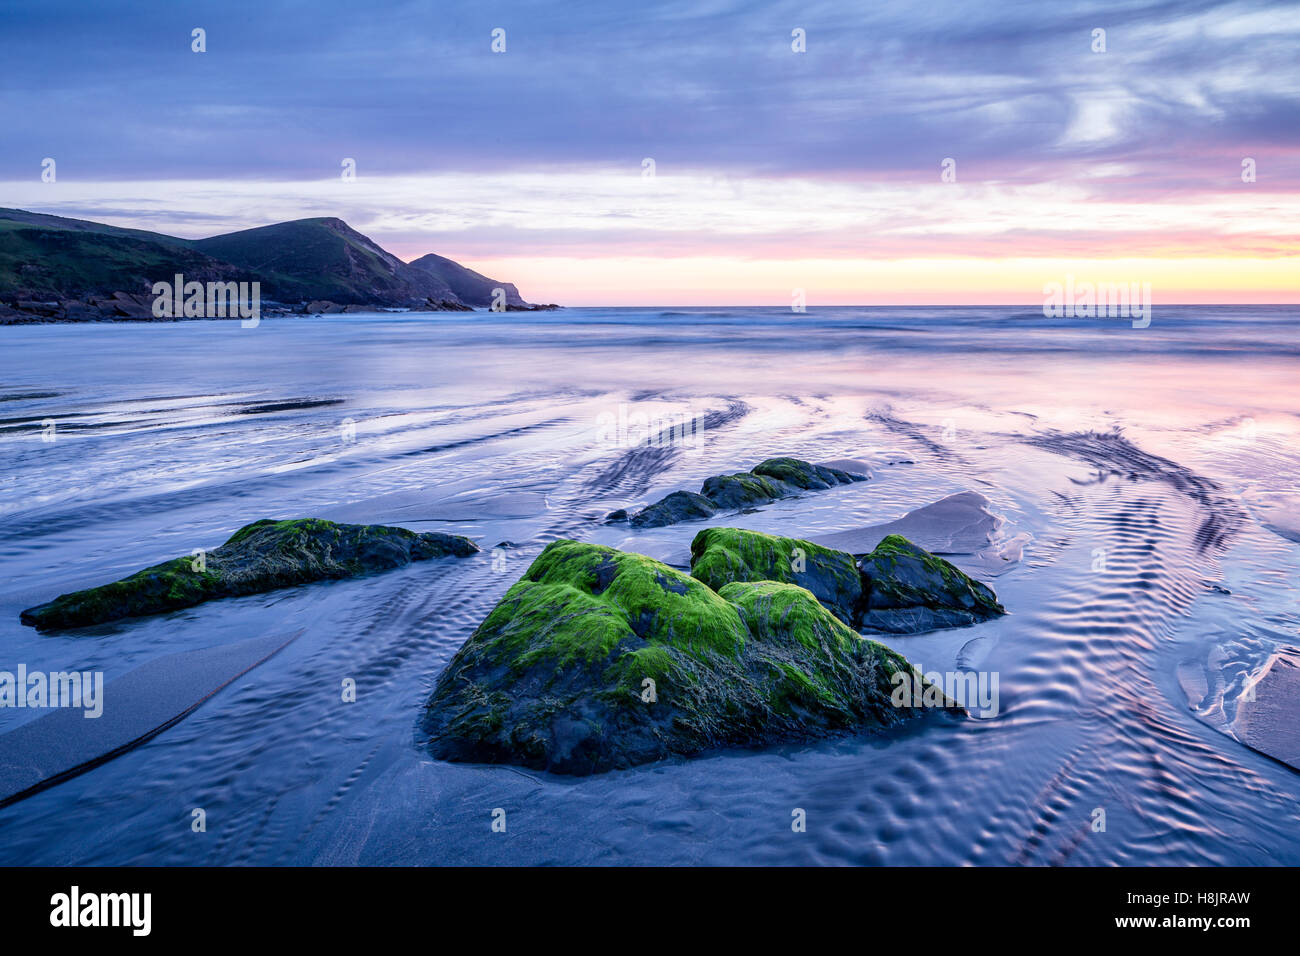 Crackington Haven on the Cornish coastline, UK. - Stock Image